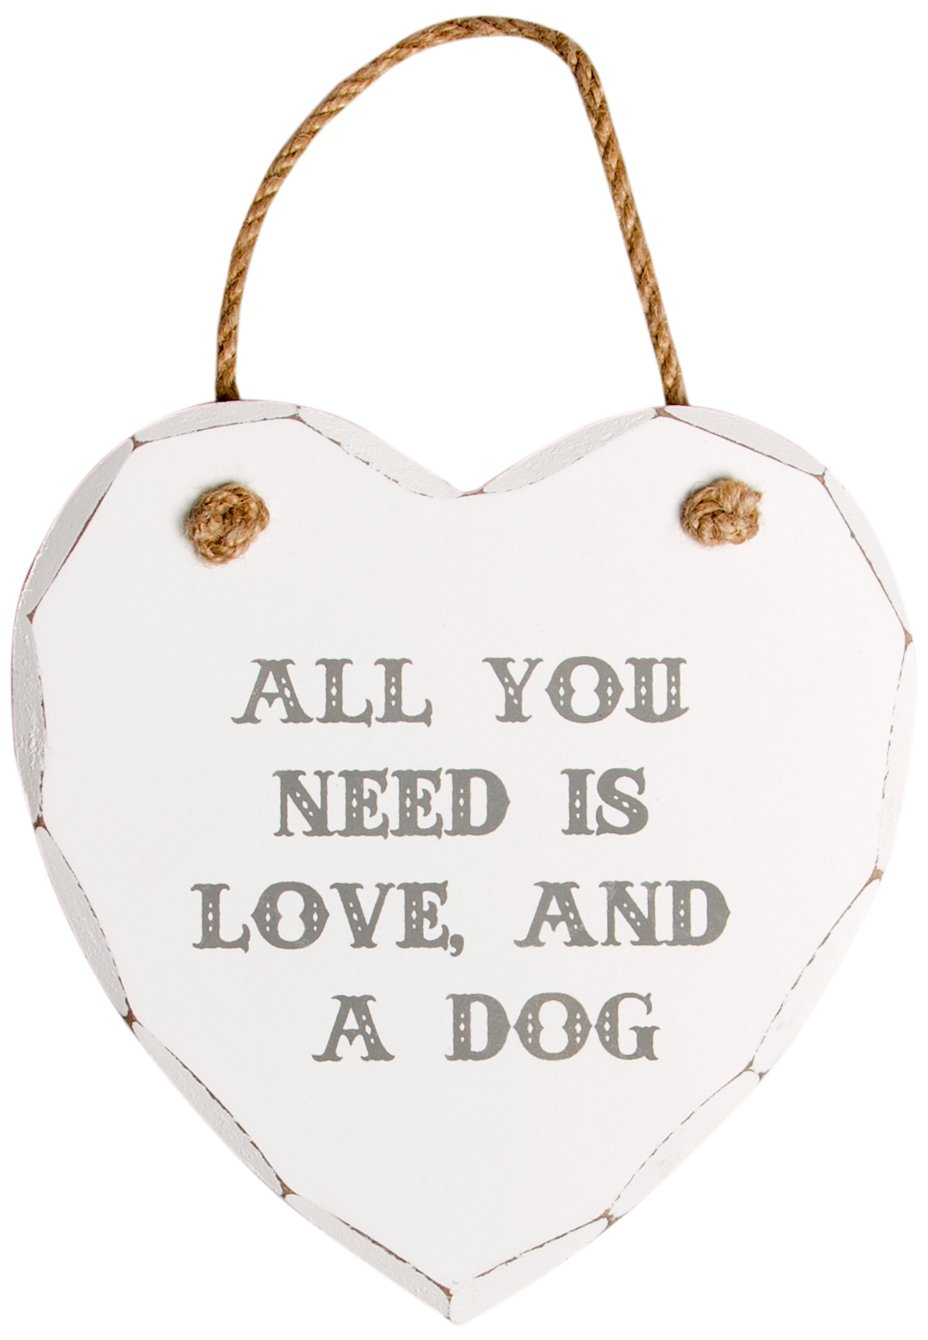 Sass & Belle Cœur Plaque pour porte avec inscription (en anglais) All You Need Is Love and a dog RJB Stone HEART249